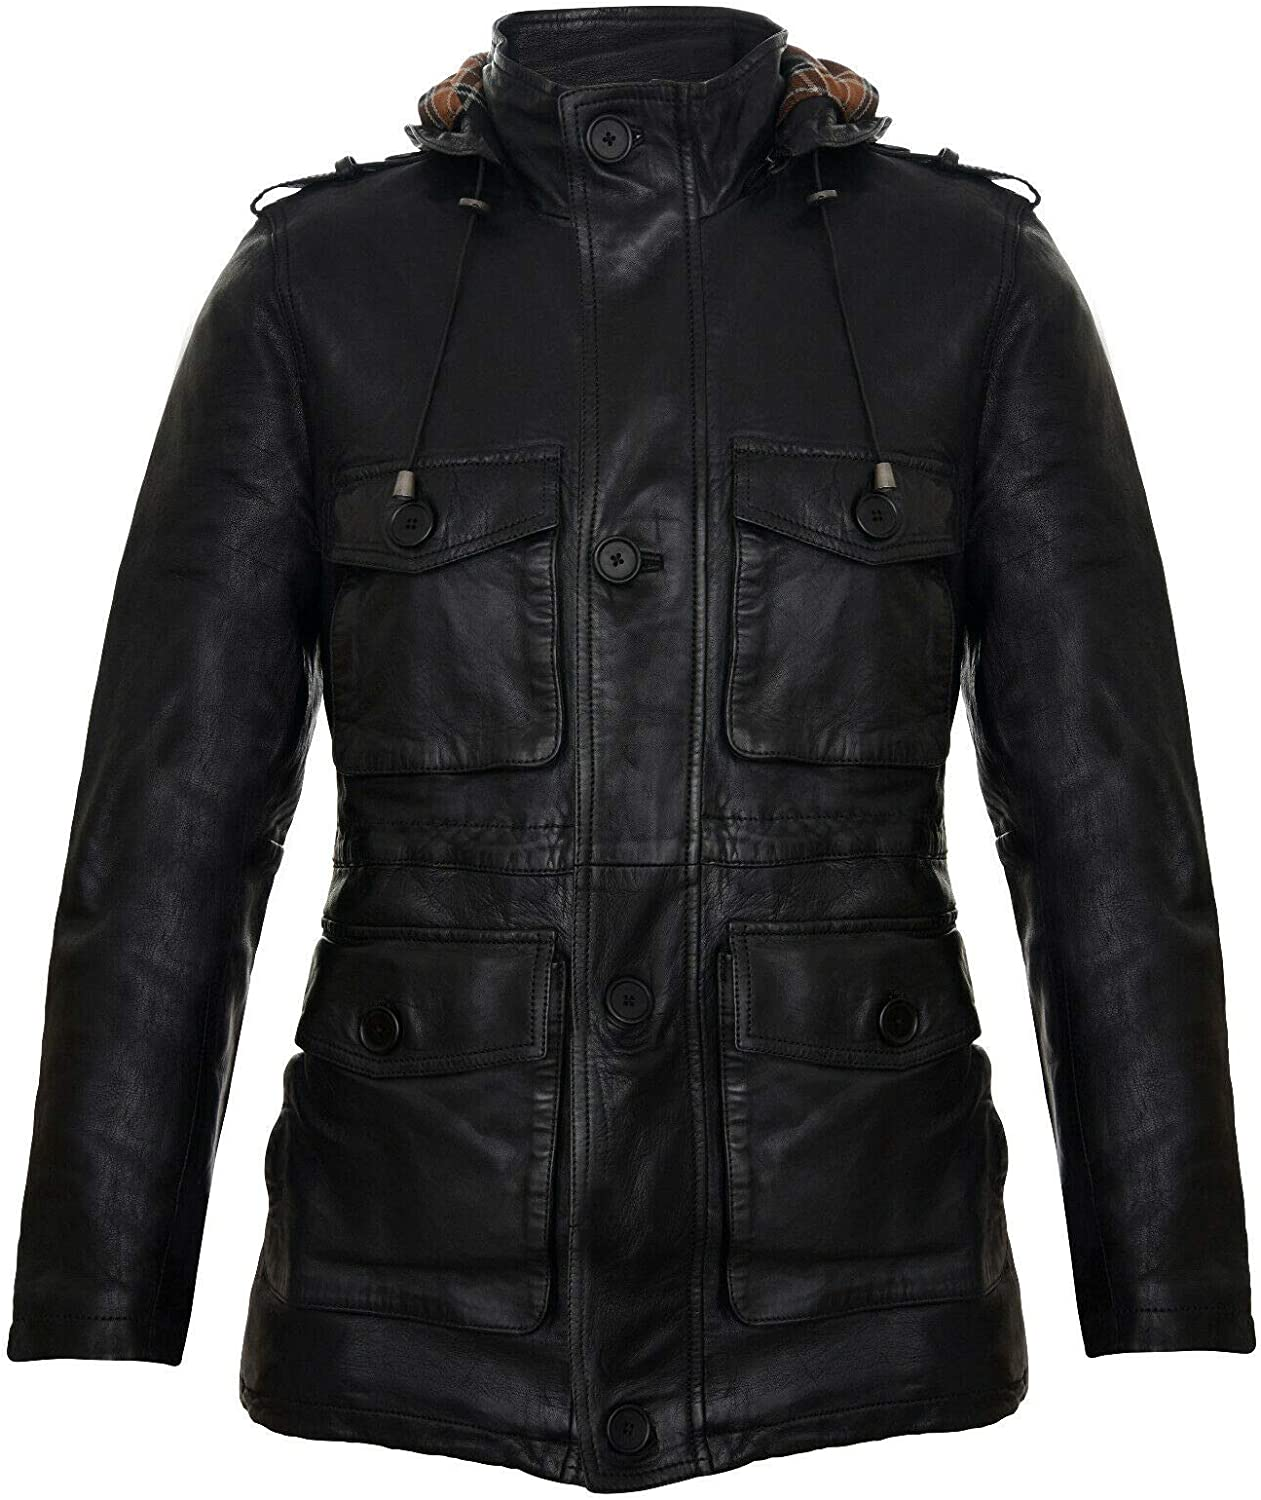 Men's Hooded Leather Multi-Pocket Duffle Trench Coat with Drawstring